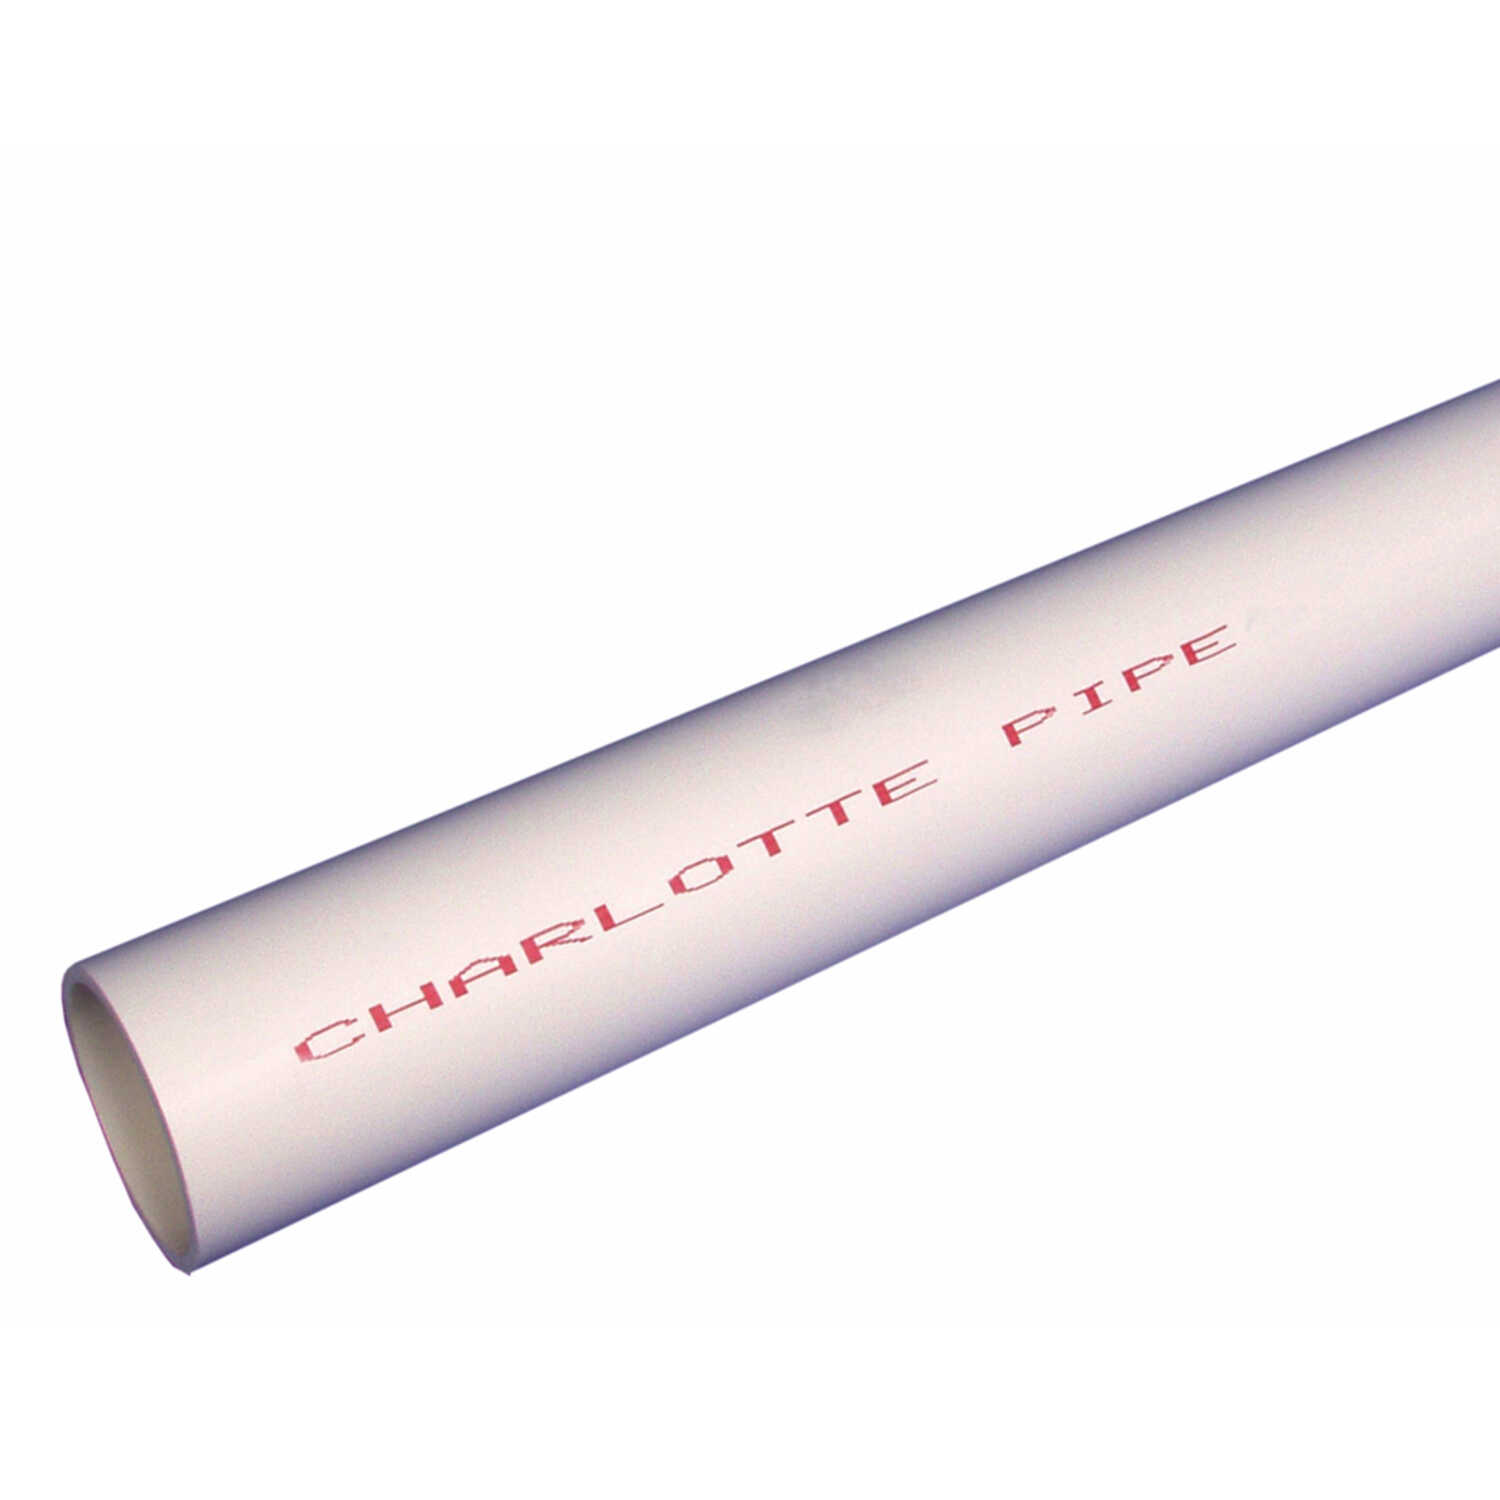 Cresline  PVC Pipe  3/4 in. Dia. x 10 ft. L Plain End  Schedule 40  480 psi